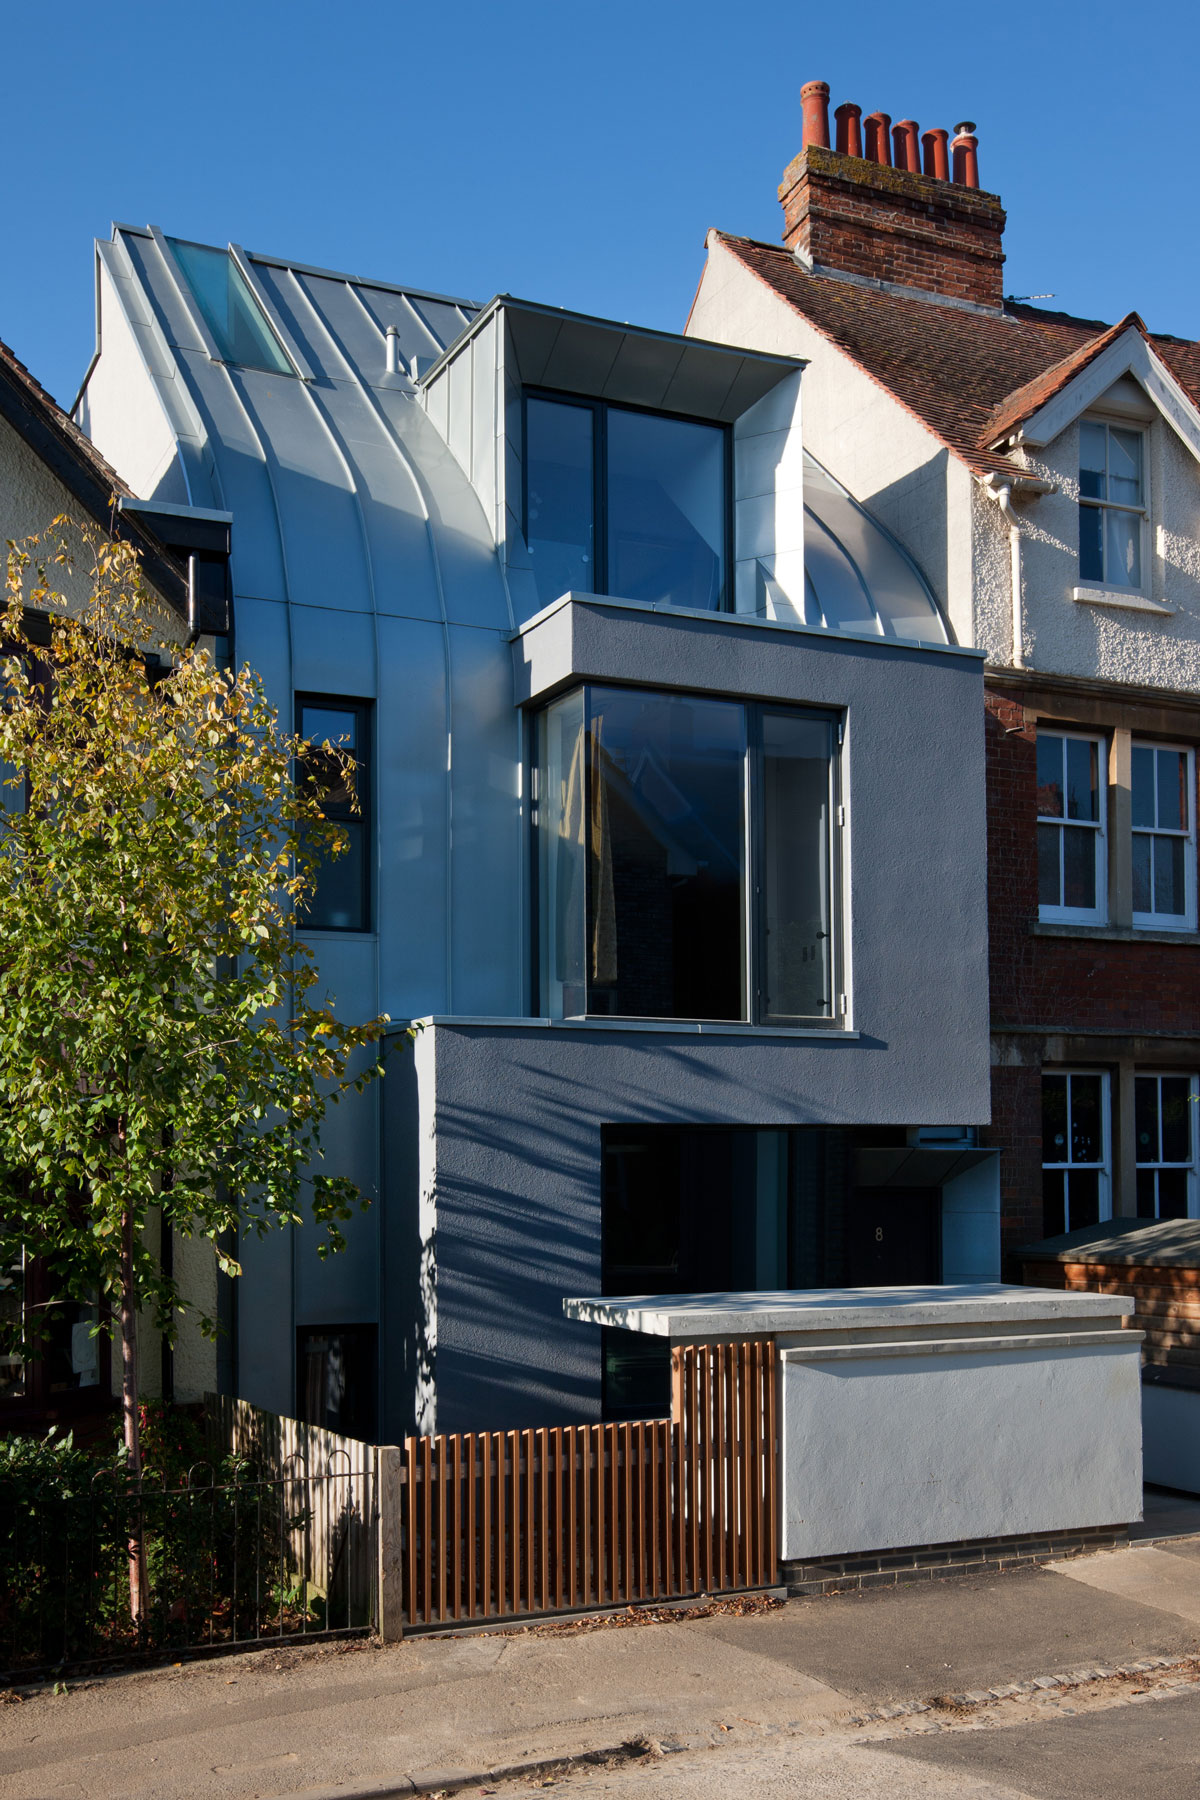 Hill Top House Project - Adrian James Architects, Oxford